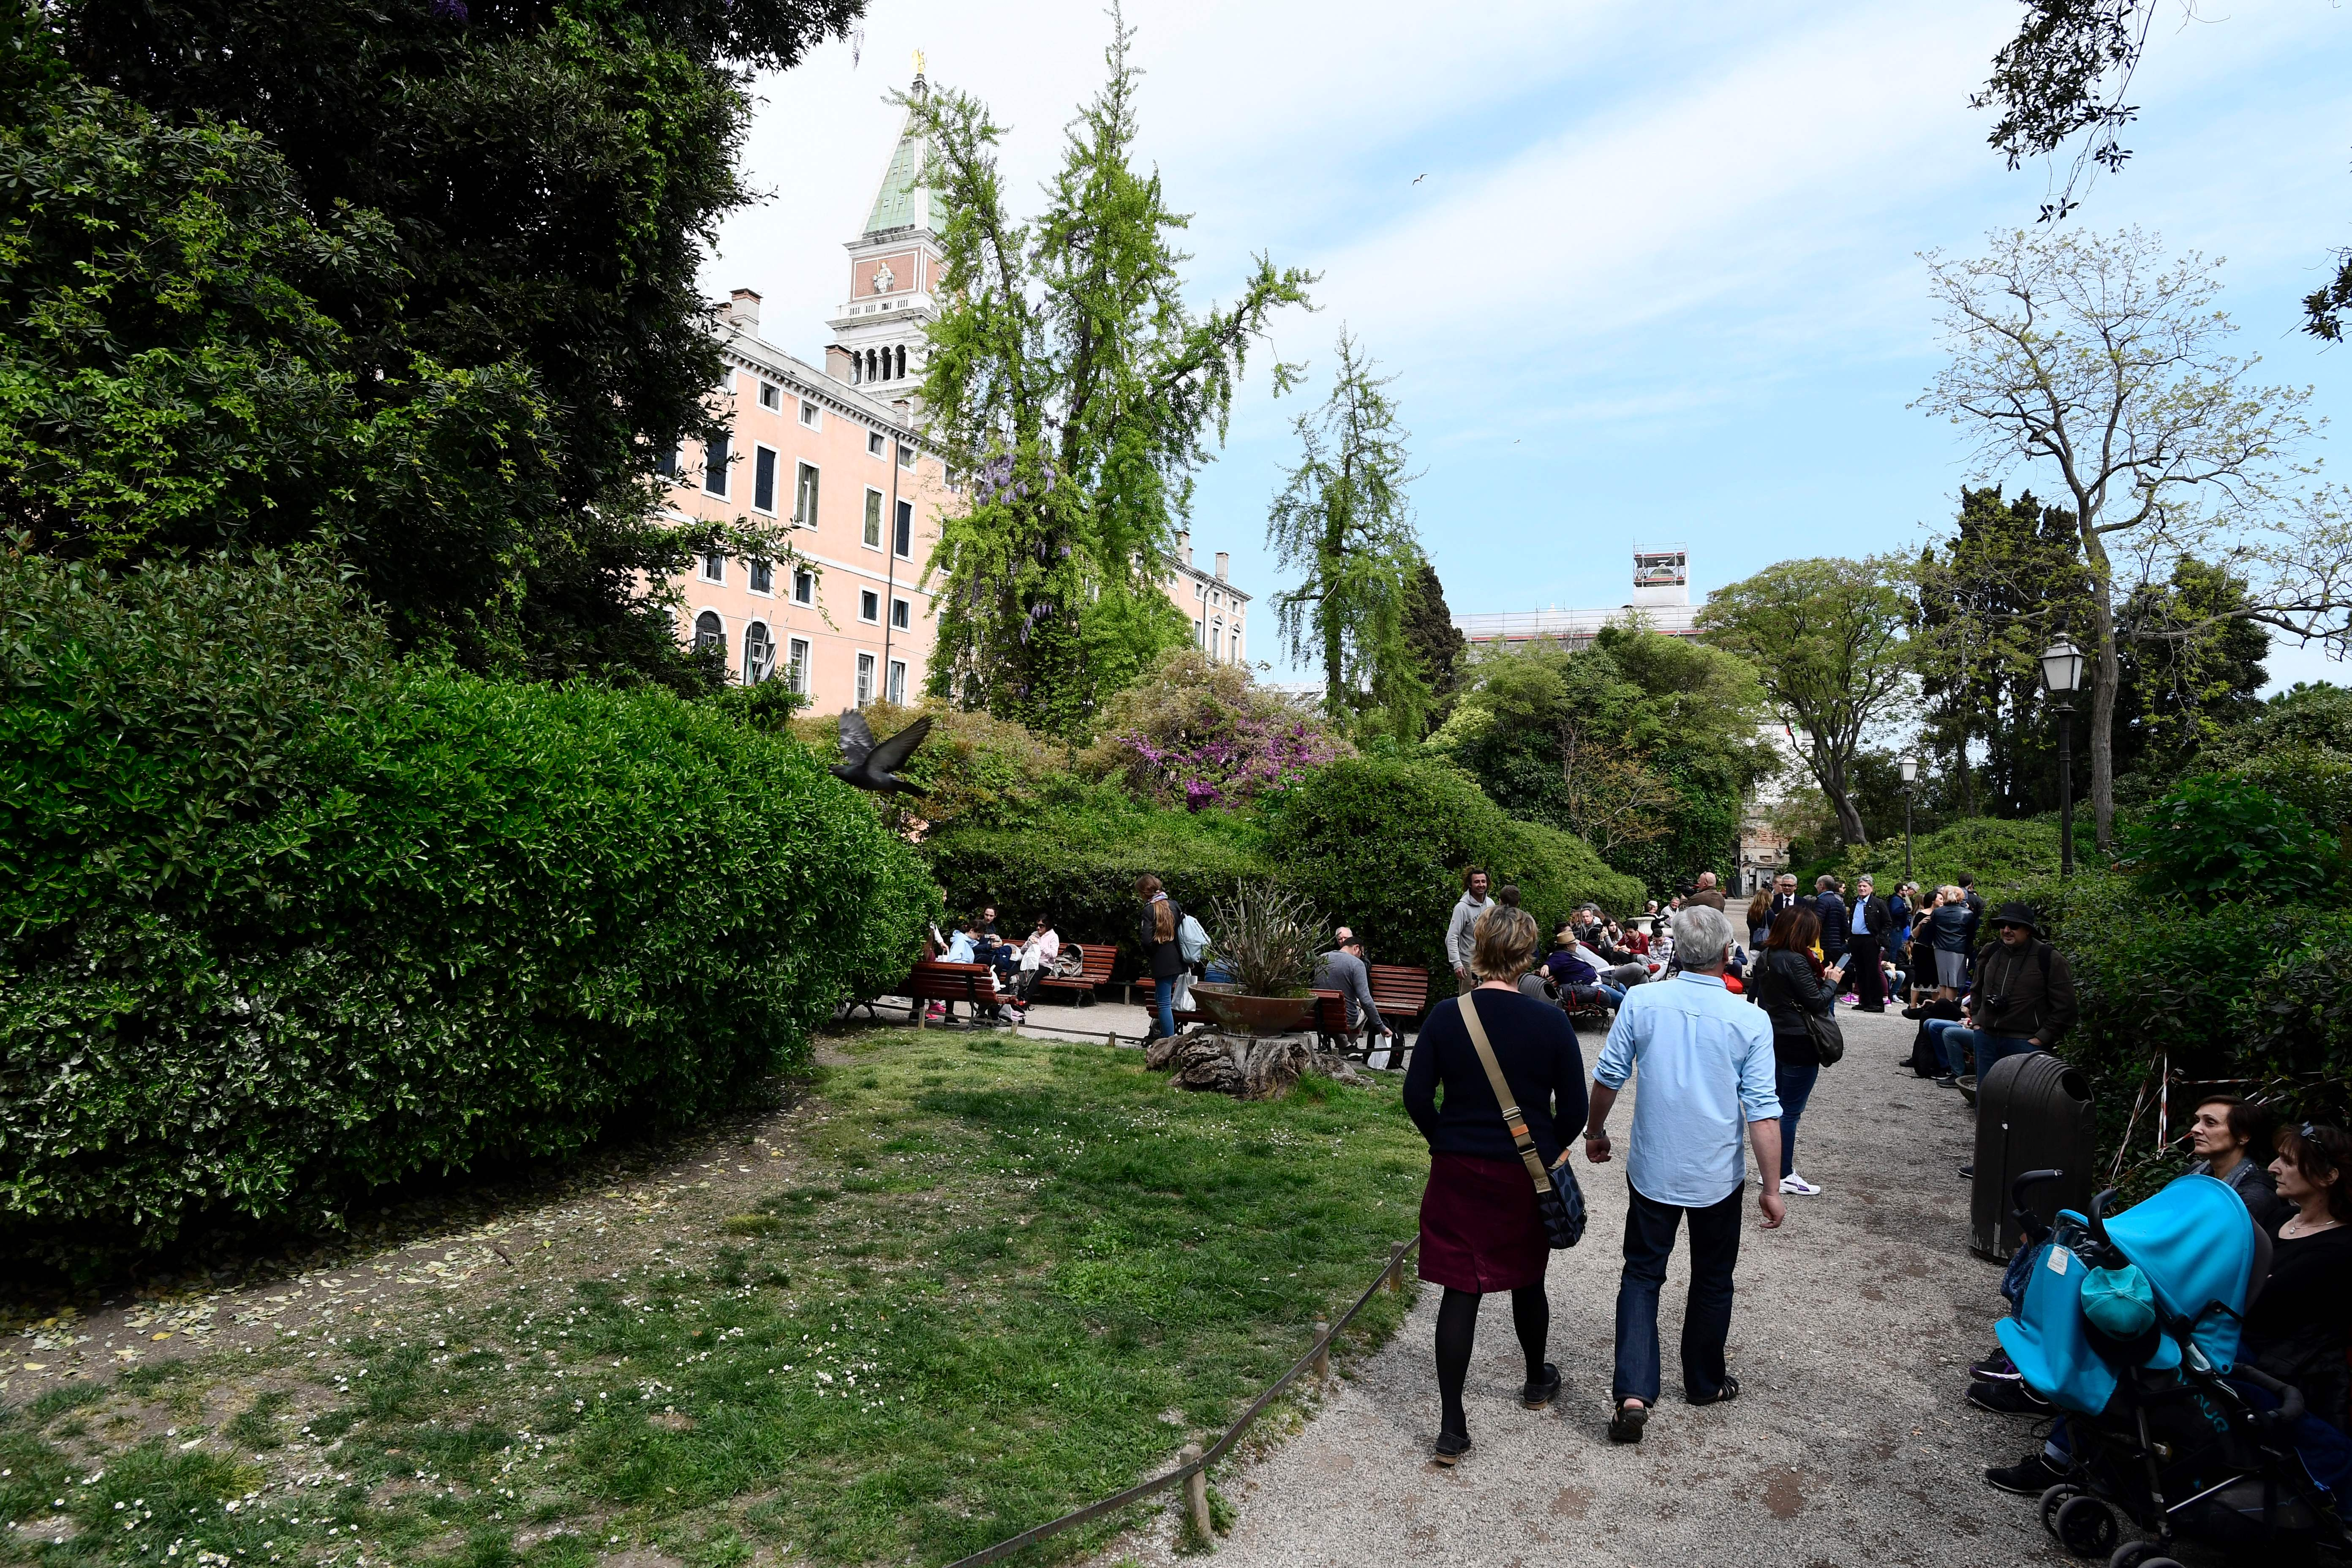 A picture taken on 7 Apri, 2017 shows a general view of the Royal Gardens of Venice.